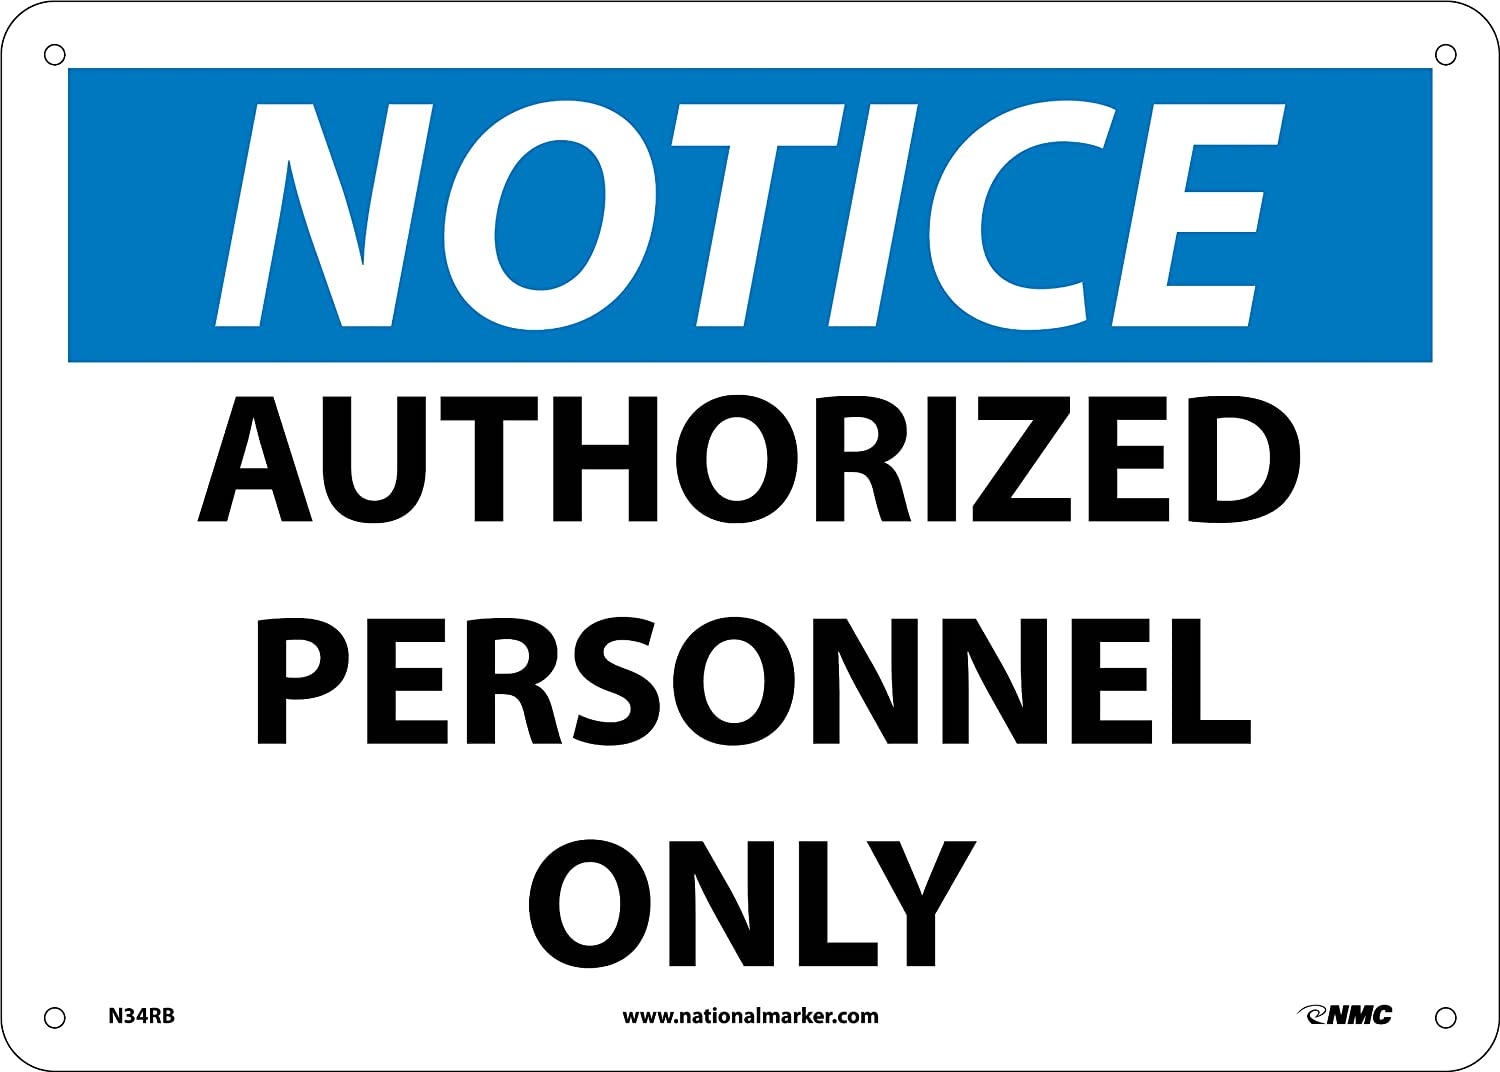 NOTICE AUTHORIZED PERSONNEL ONLY Rigid Plastic 14 Width x 10 Height NMC N34RB OSHA Sign Black//Blue On White